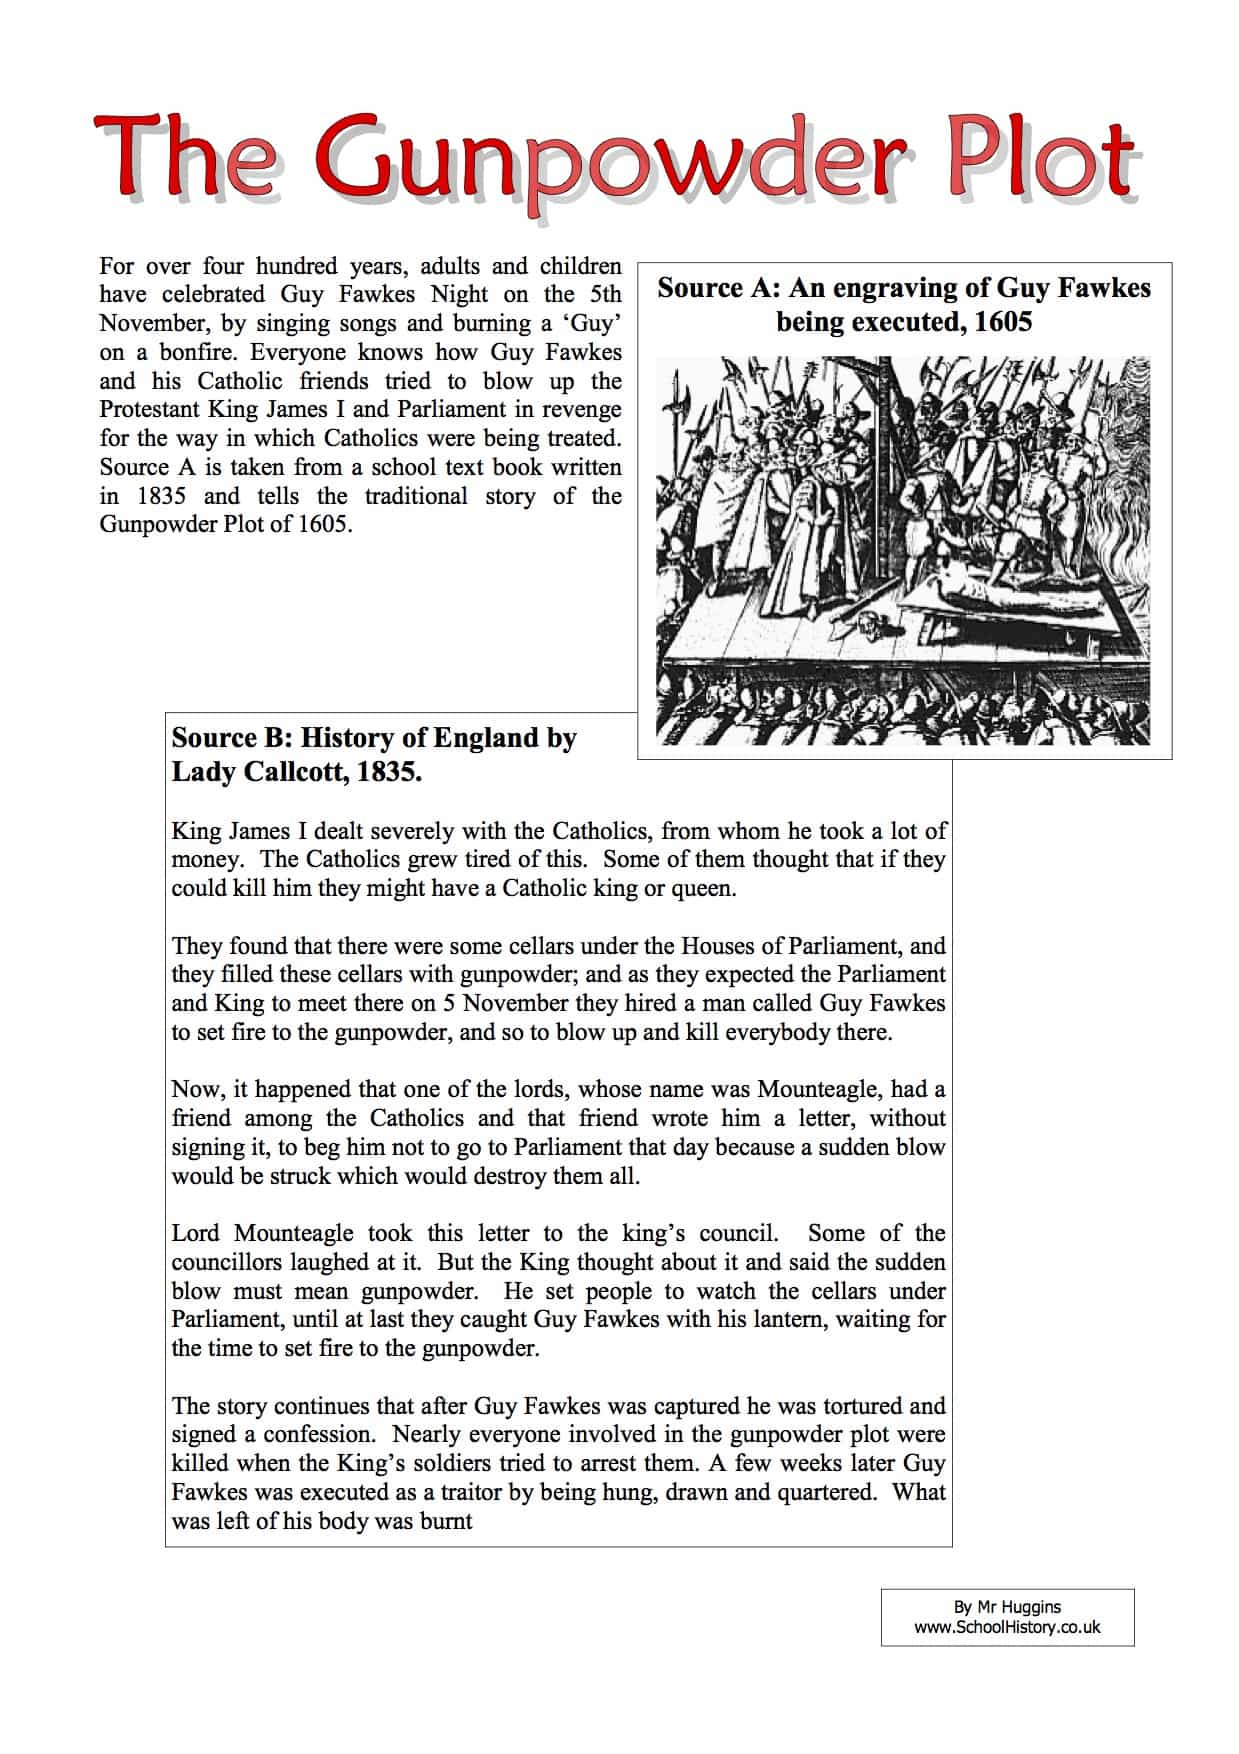 The Gunpowder Plot Facts Worksheet